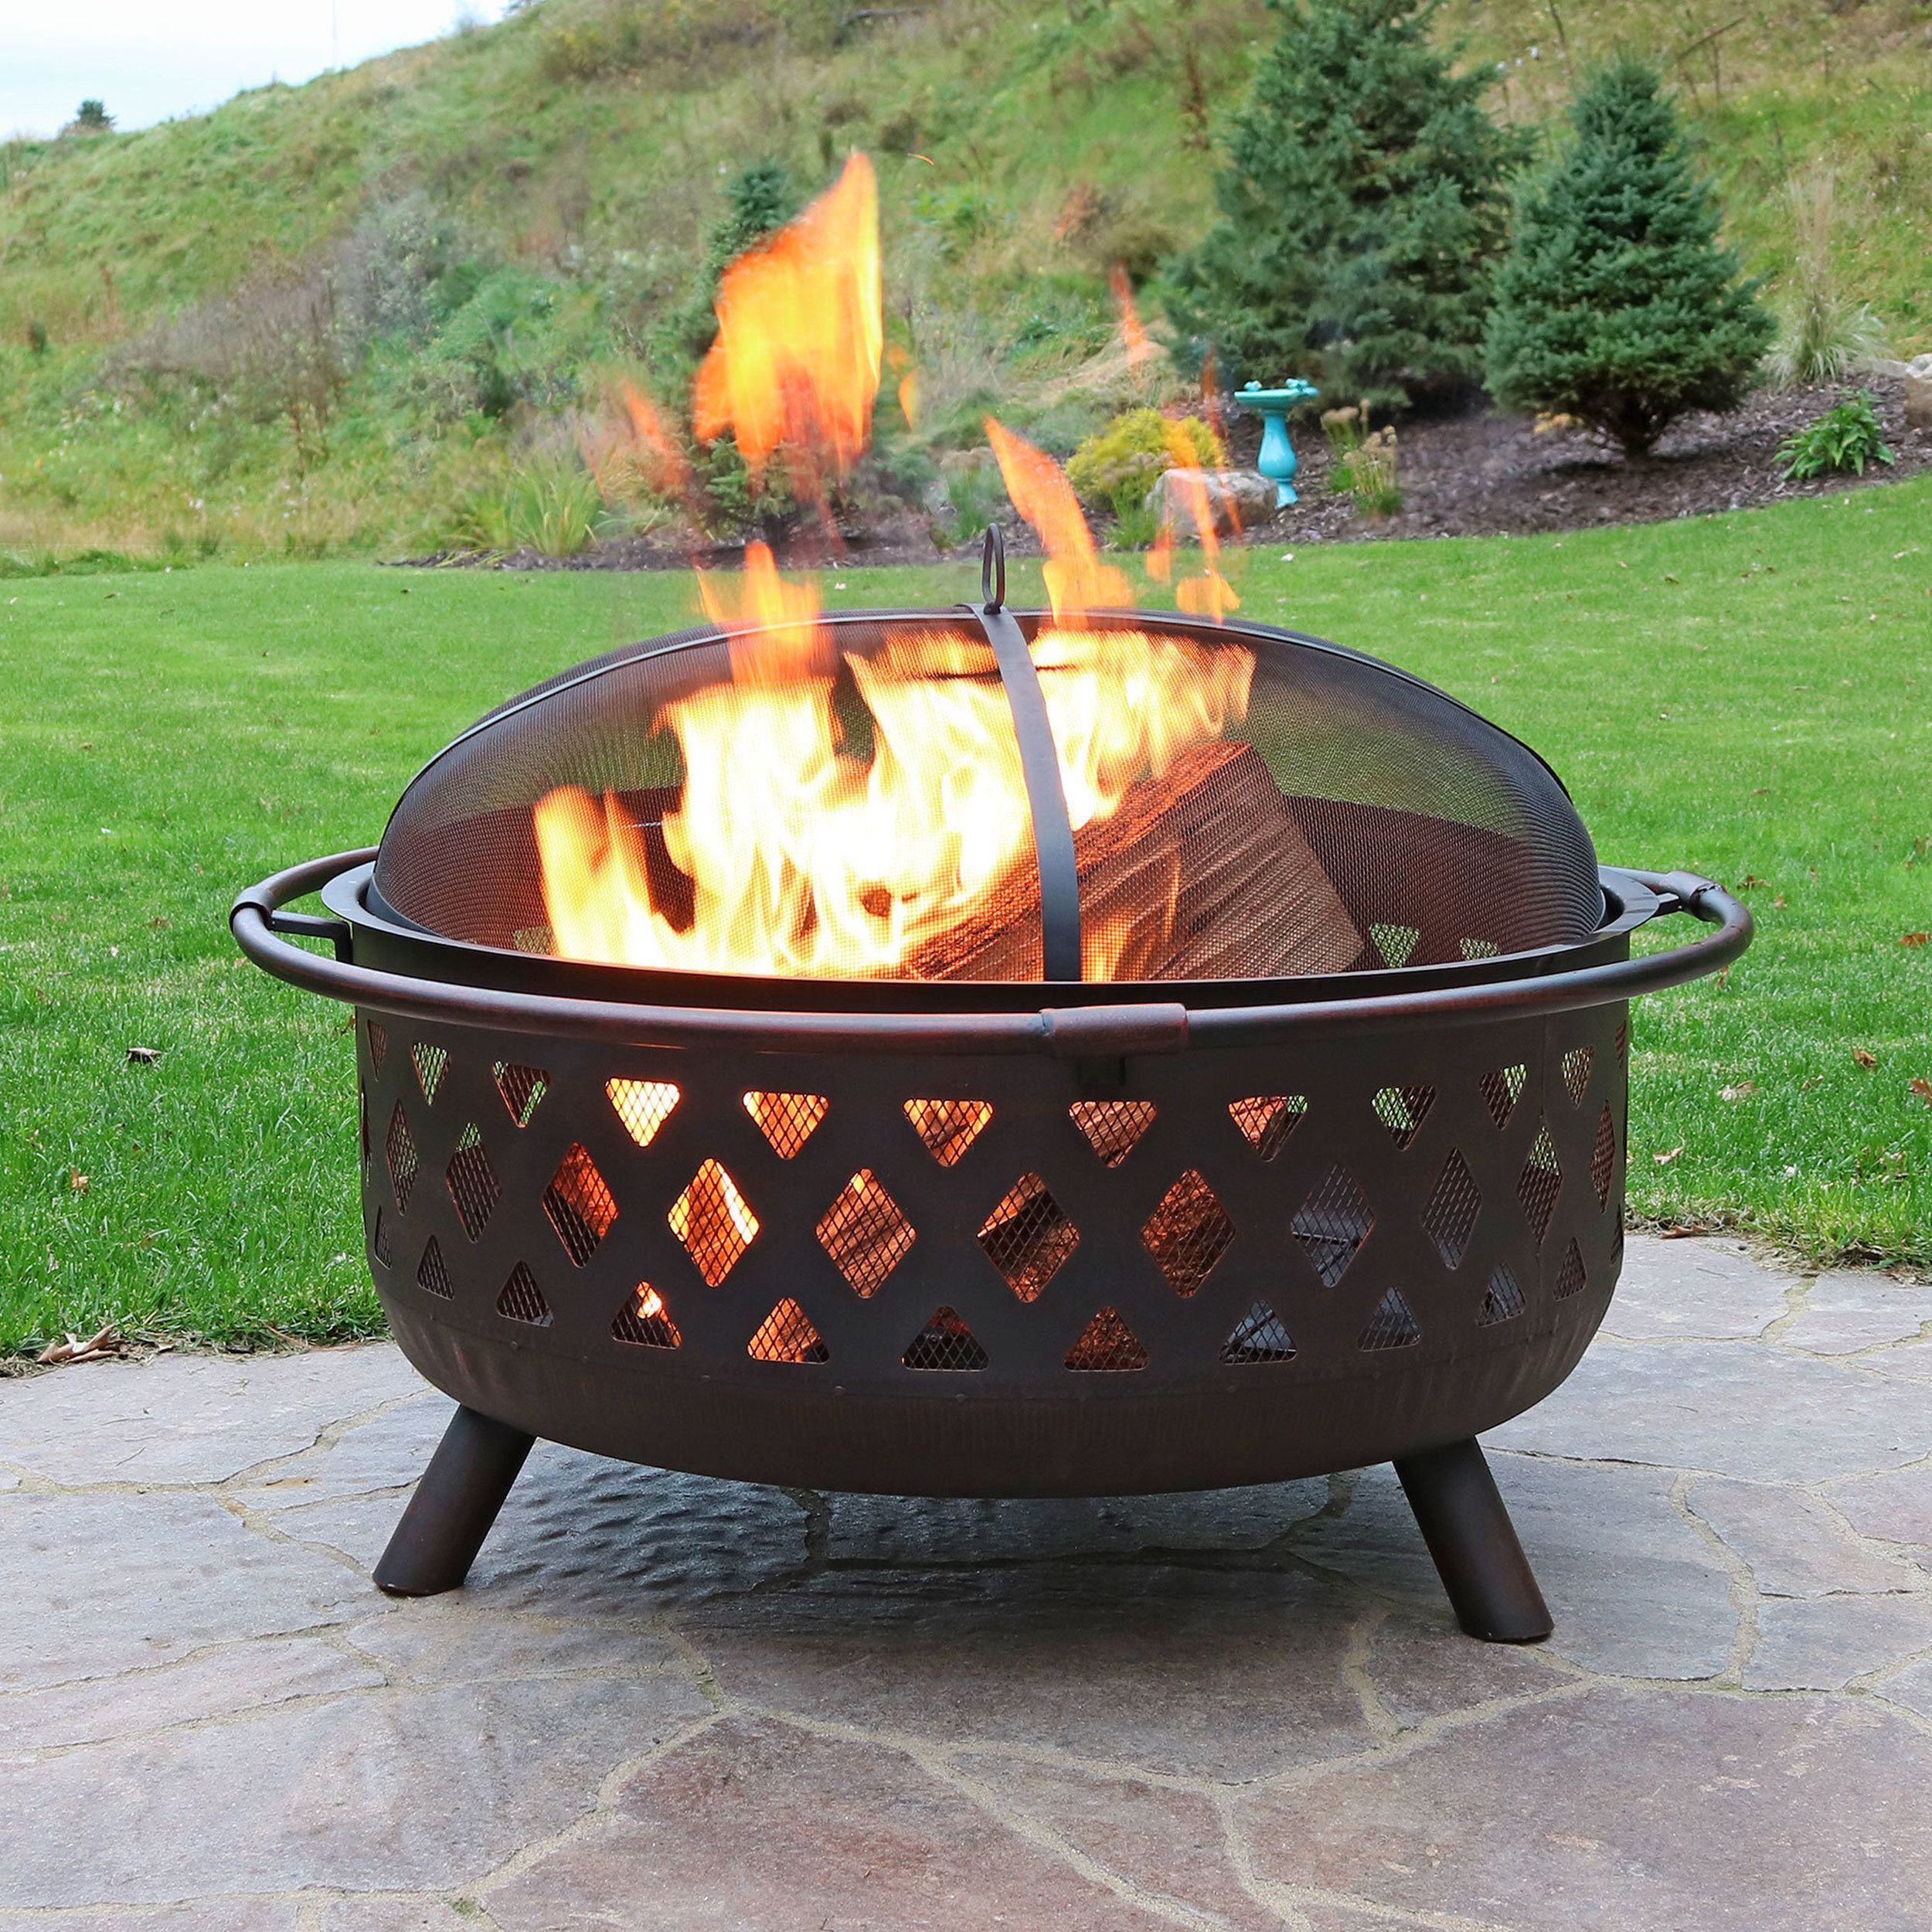 Find The Perfect Outdoor Fire Pit For Your Space In The Collection Of Fire Rings Fire Bowls Fire Pit Tables In 2020 Wood Burning Fire Pit Outdoor Fire Pit Fire Pit